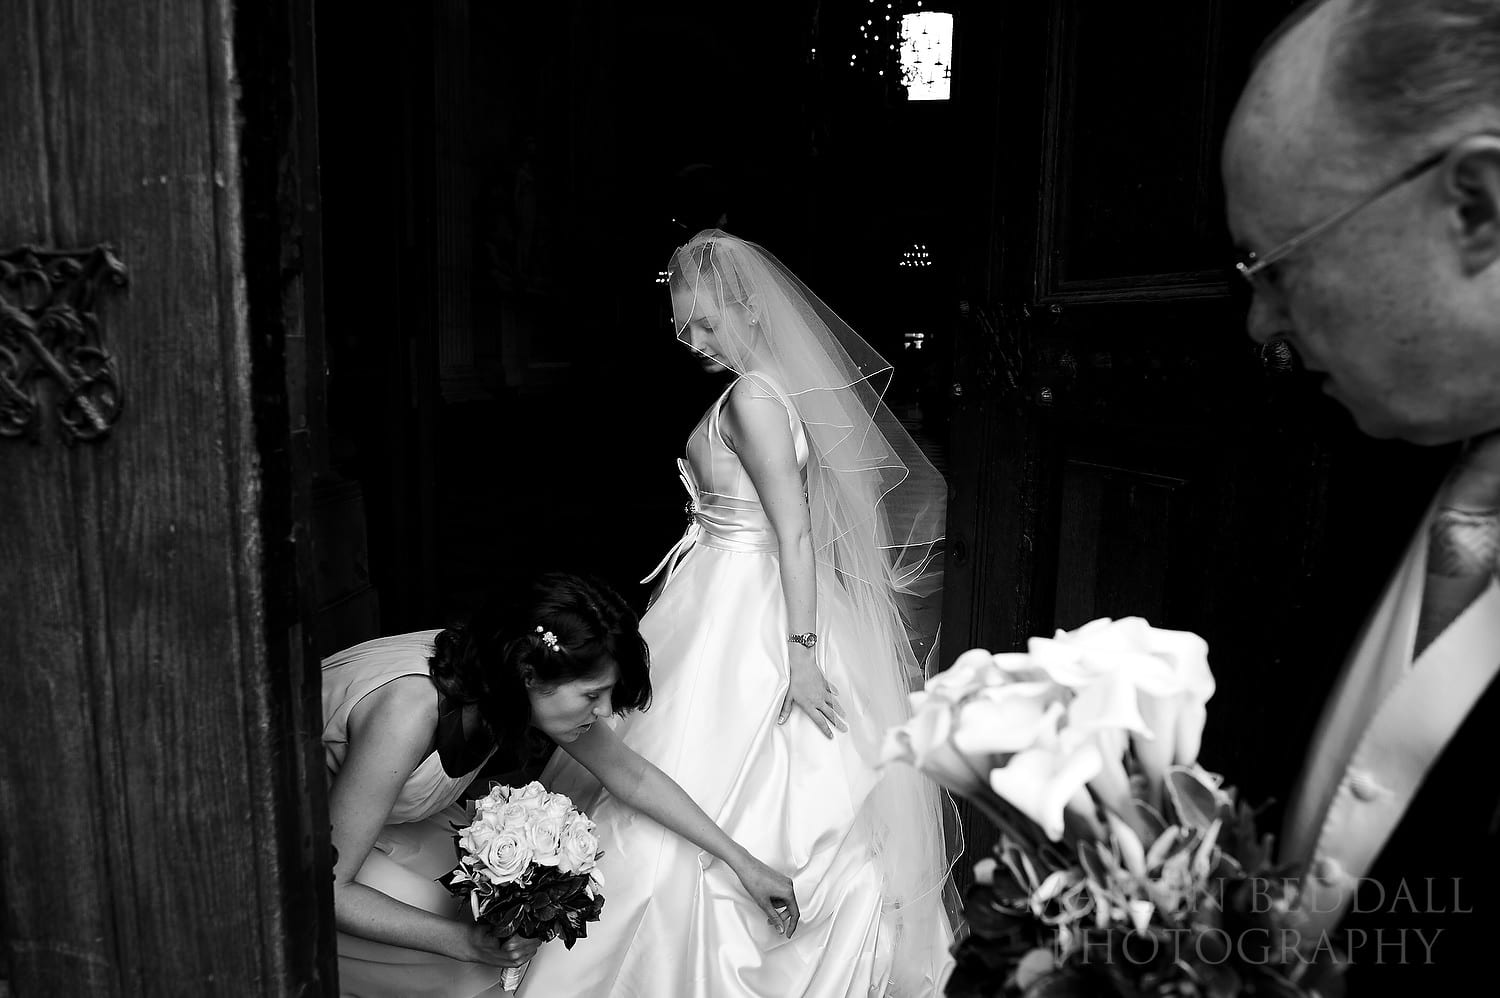 Wedding photography in 2011 at St Paul's Cathedral